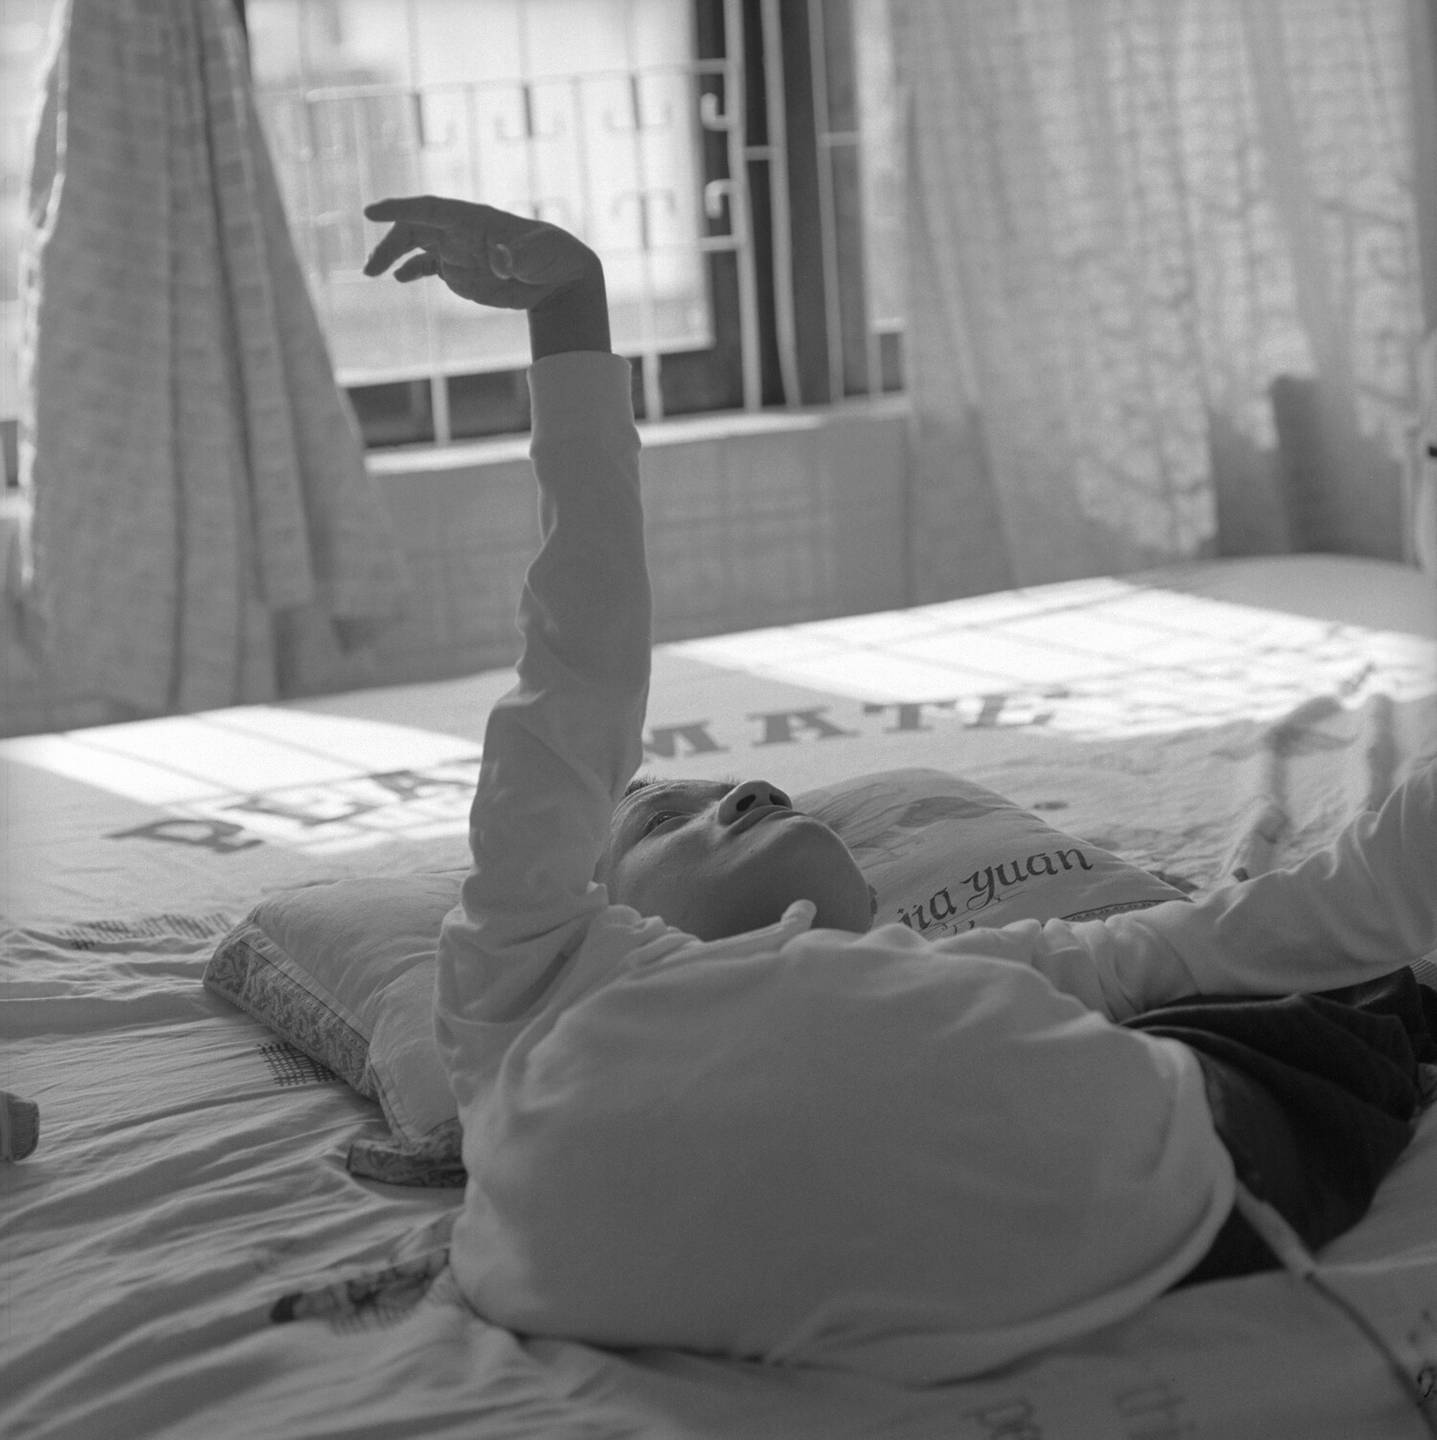 A deformed Asian child laying on a bed, arm raised into the air.